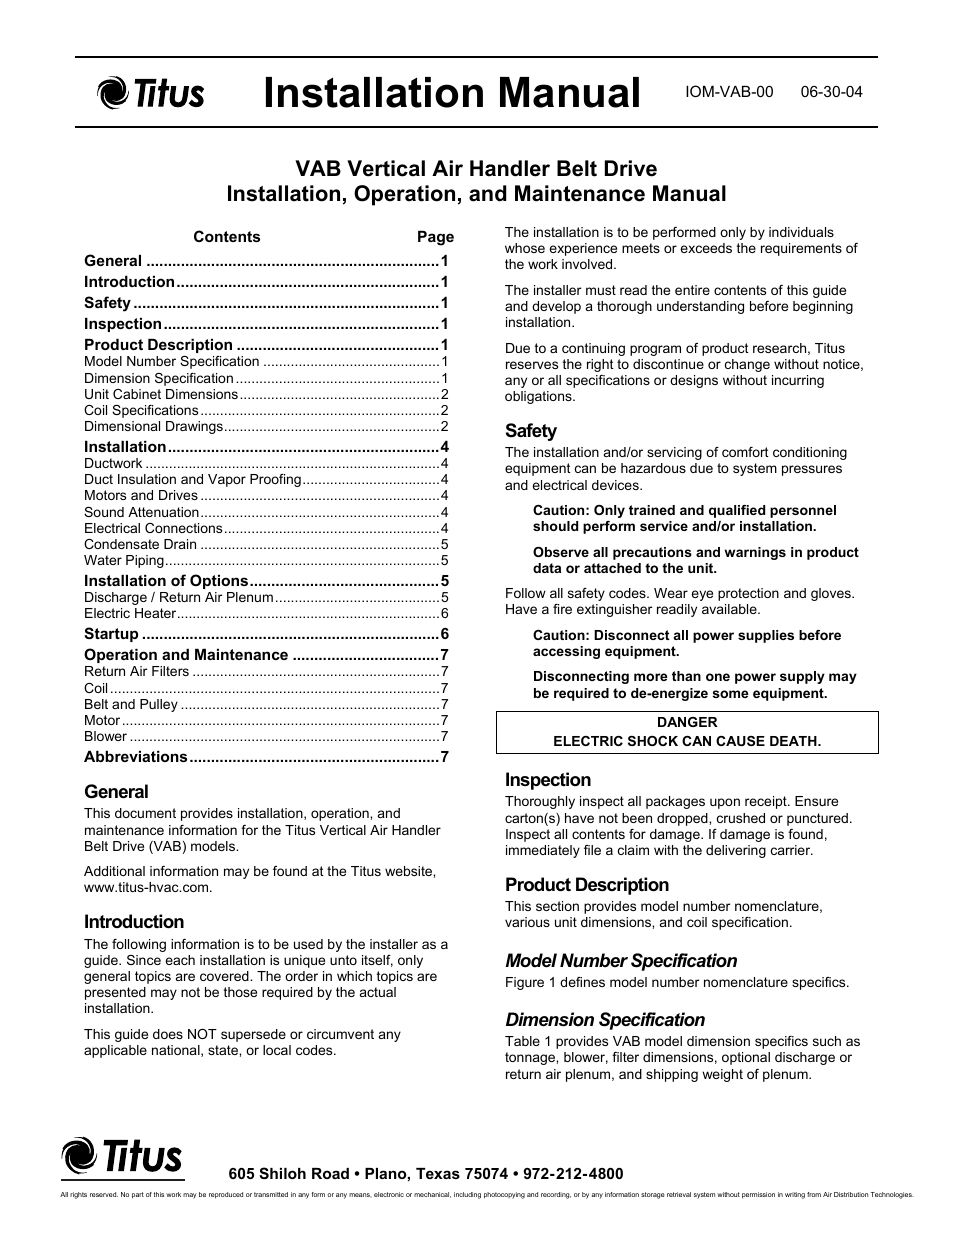 Titus VAB IOM User Manual | 9 pages